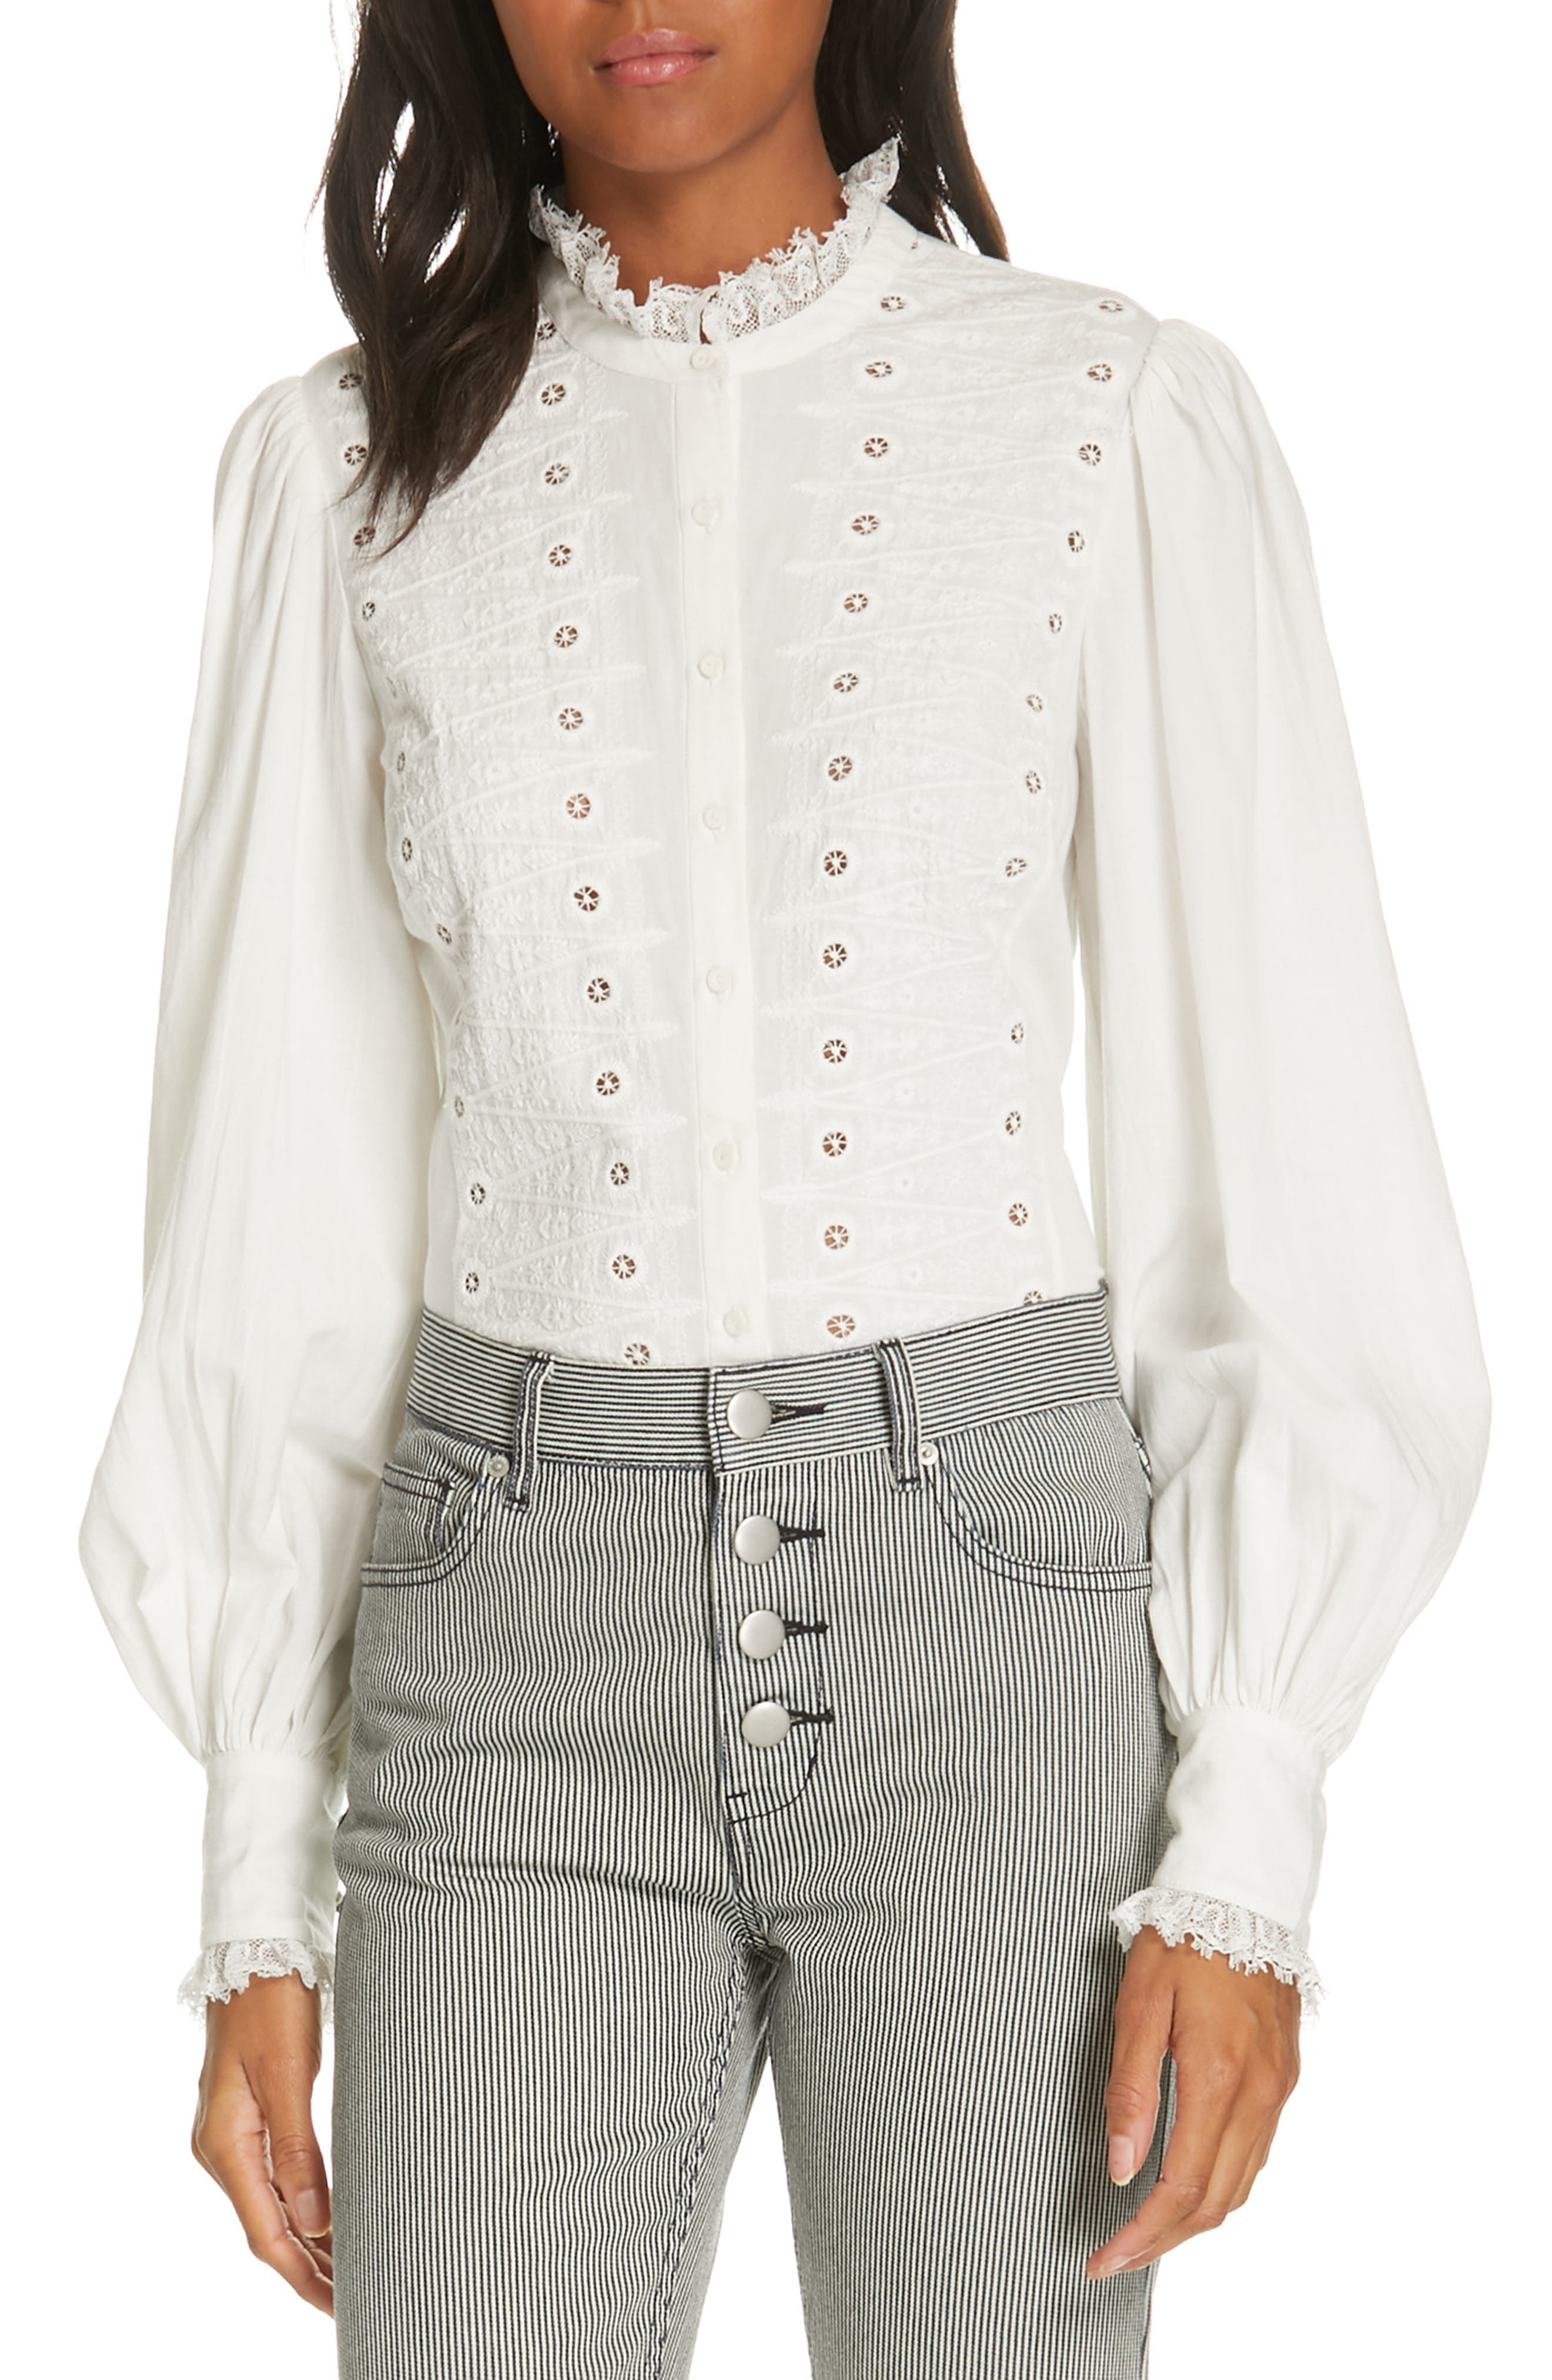 1900-1910s Clothing Womens Joie Bobette Blouse $91.20 AT vintagedancer.com